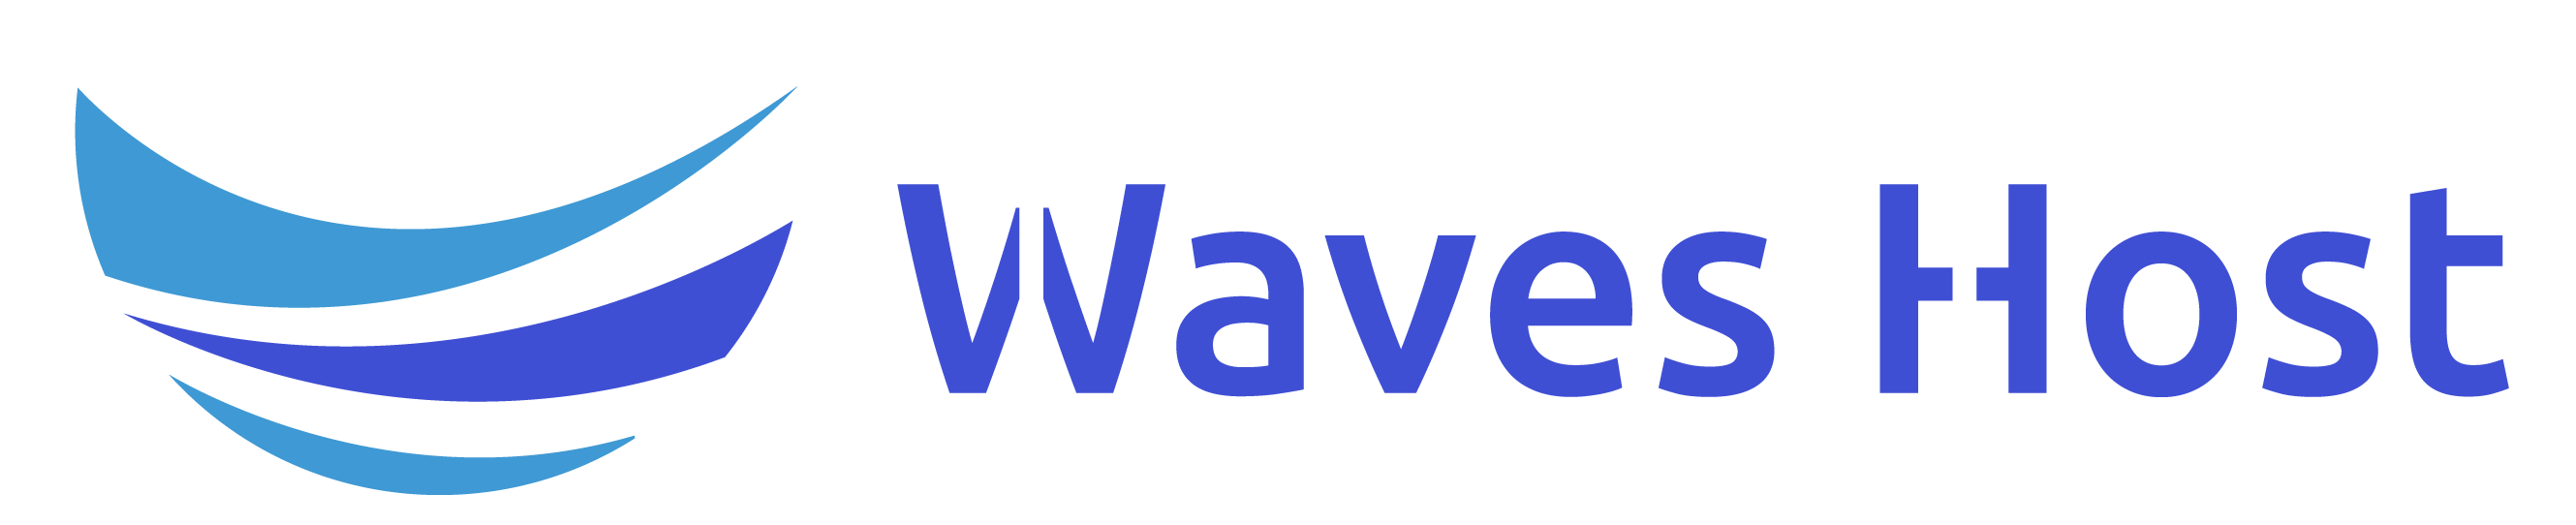 Waves Host